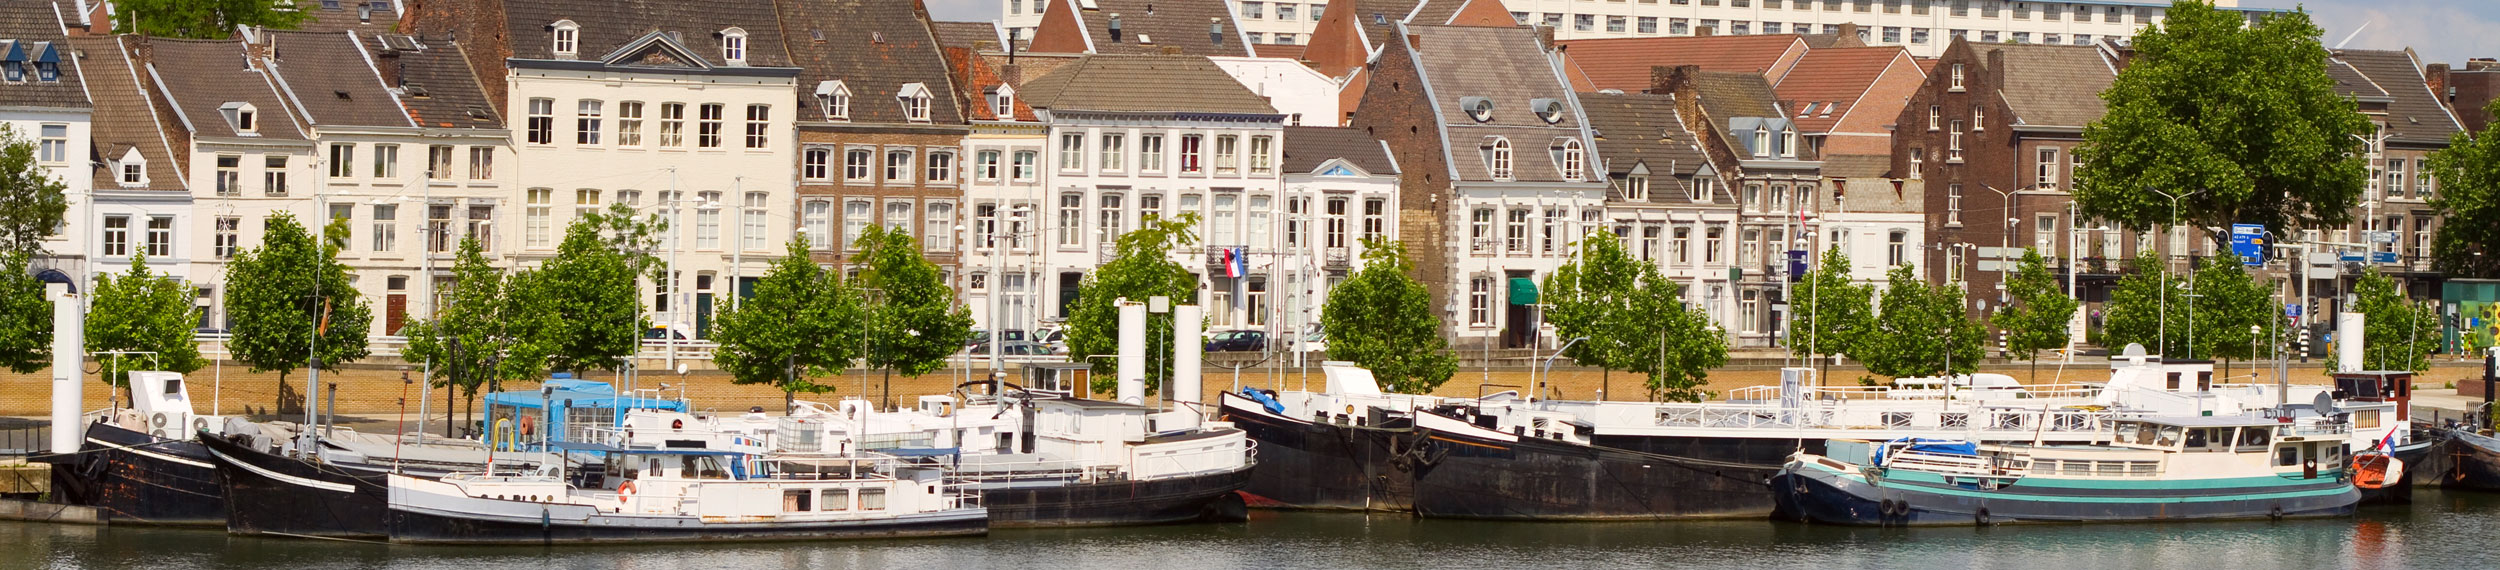 Landscape shot of buildings and boats along the Meuse River in Maastricht, Netherlands.